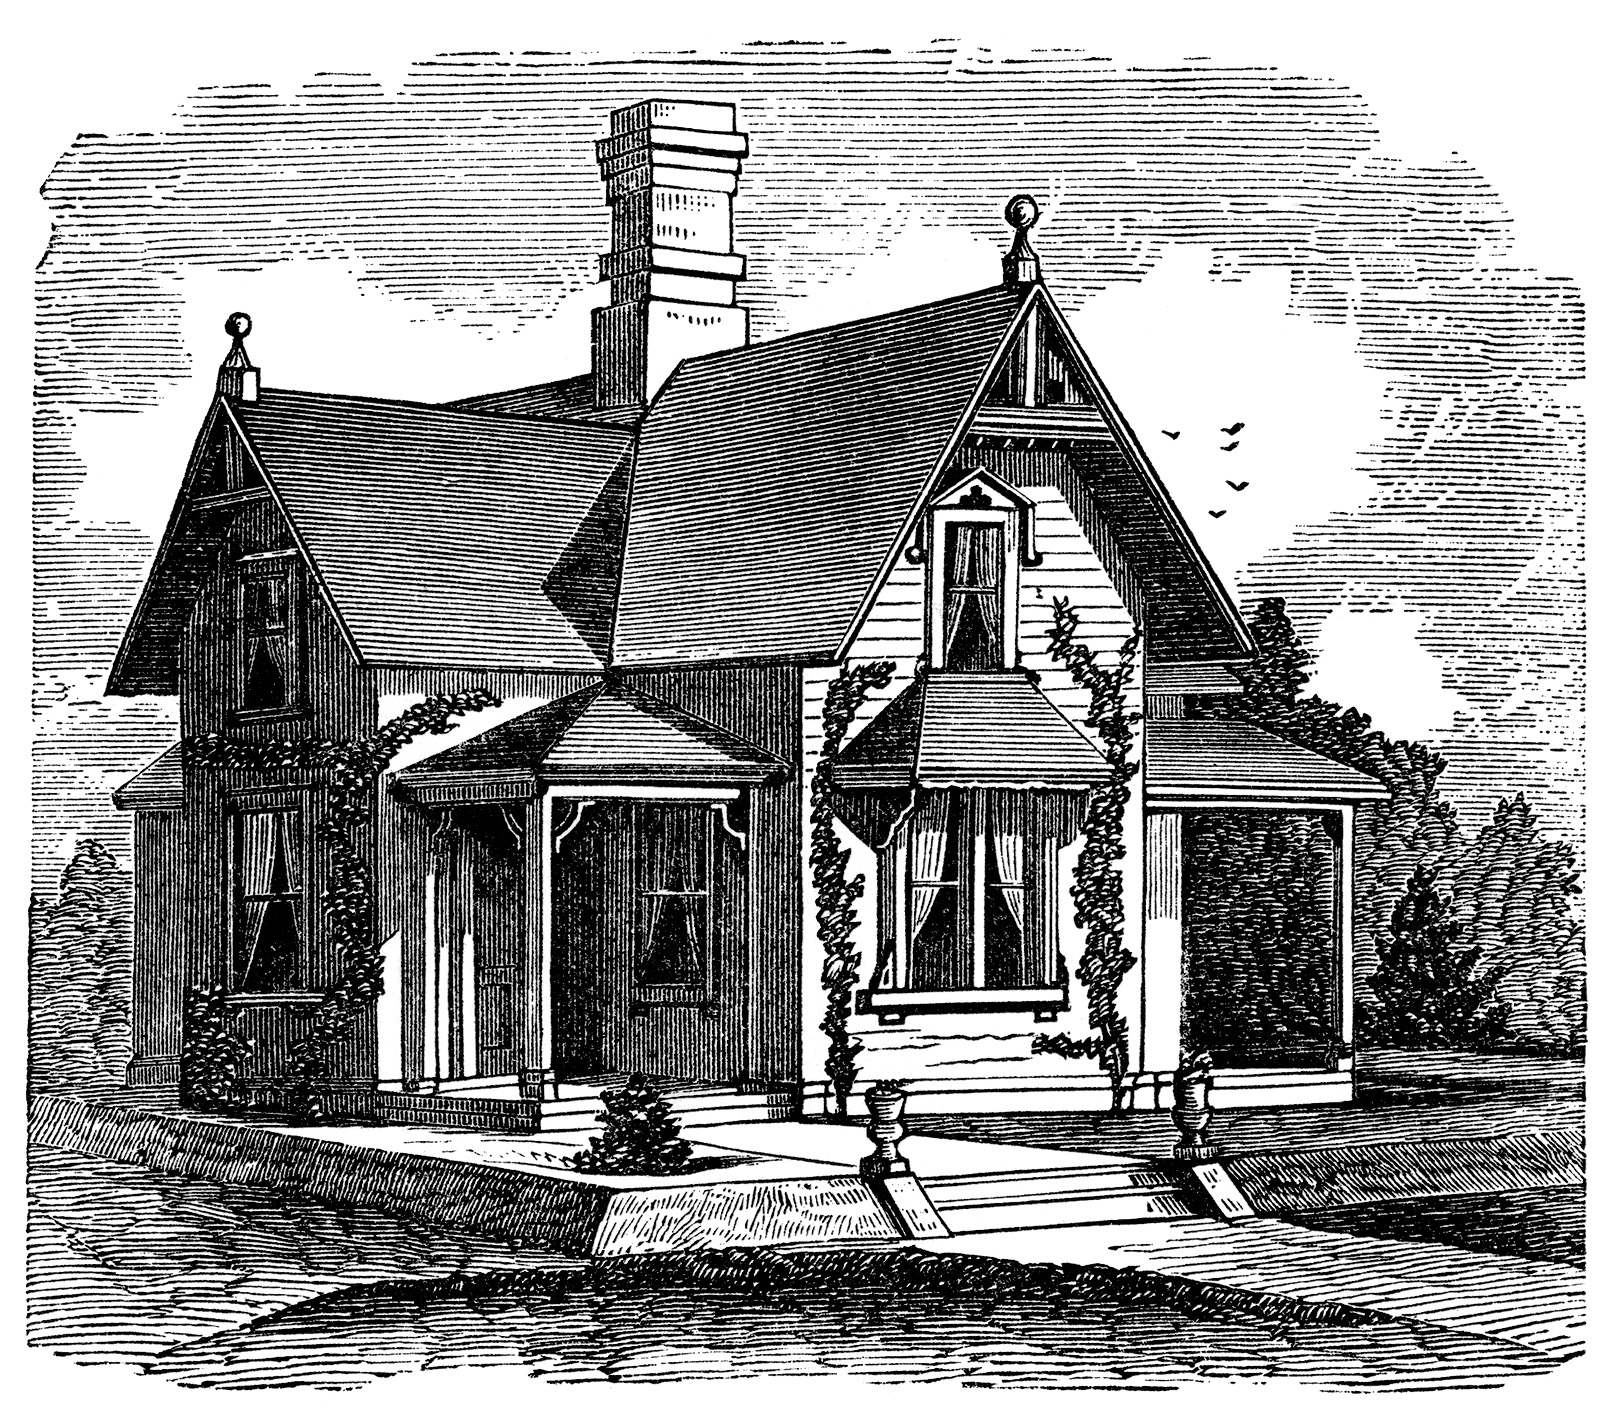 Story and a half victorian home free clip art image for Story and a half house